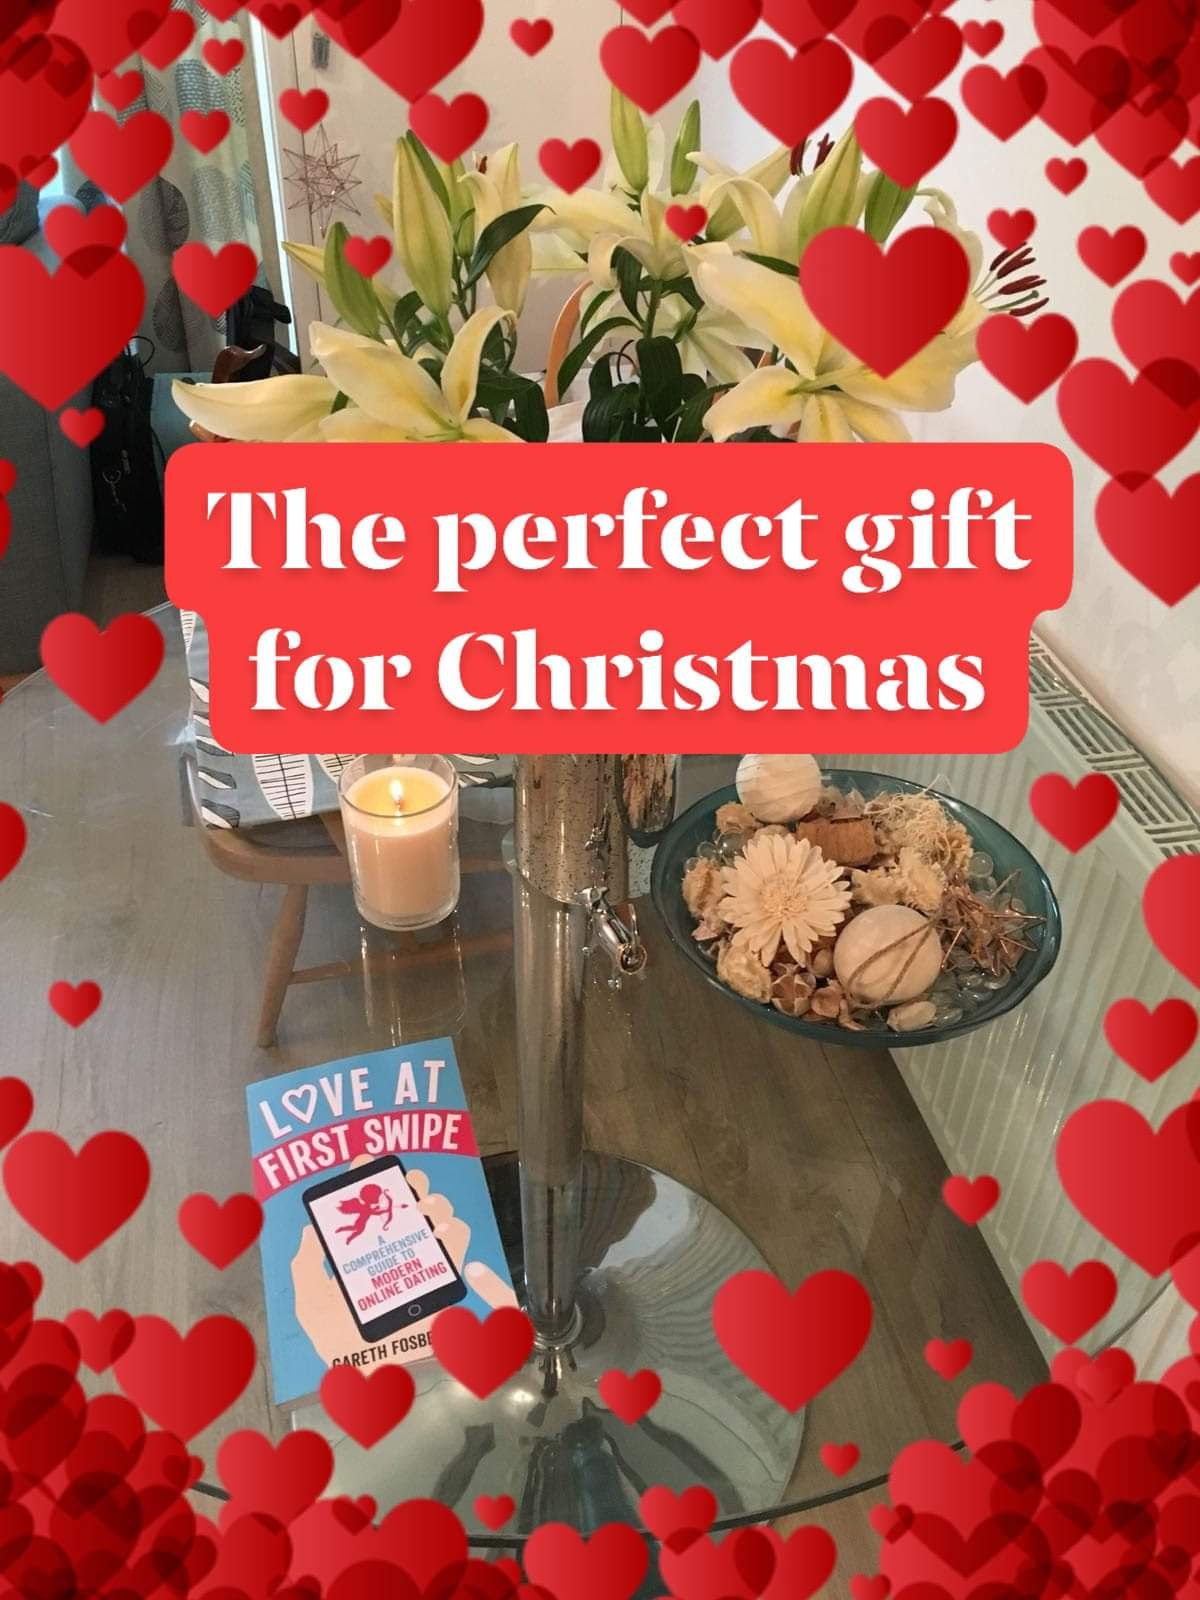 Sally's Cafe and Bookstore | New book on the shelves for Christmas | Love at First Swipe by Gareth Fosberry #OnlineDating #datingadvice #love #loveatfirstswipe